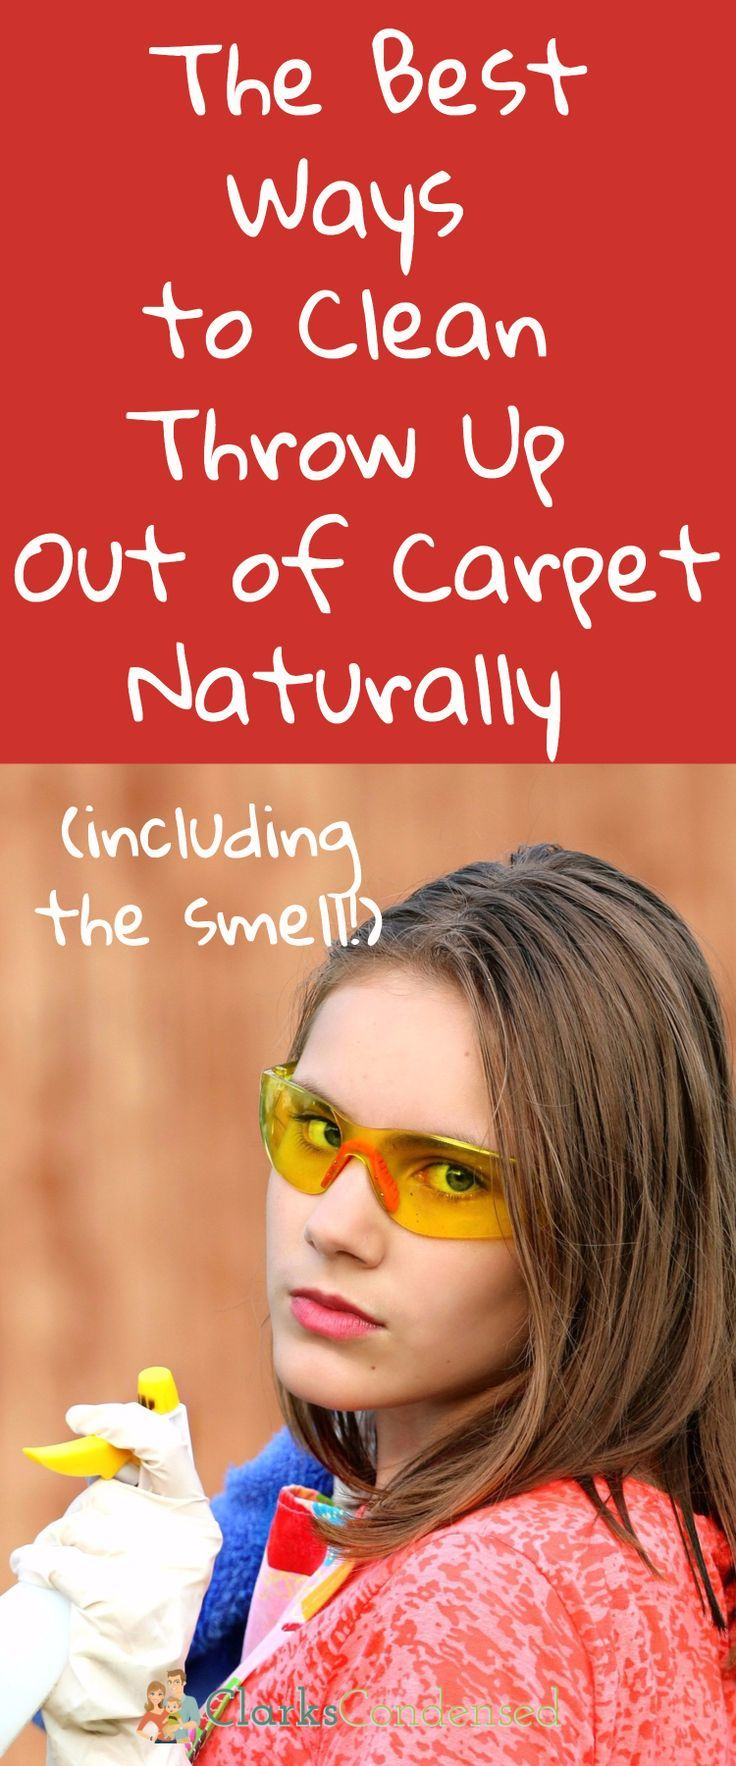 How to Clean Throw Up Out of Carpet Naturally Including the Smell